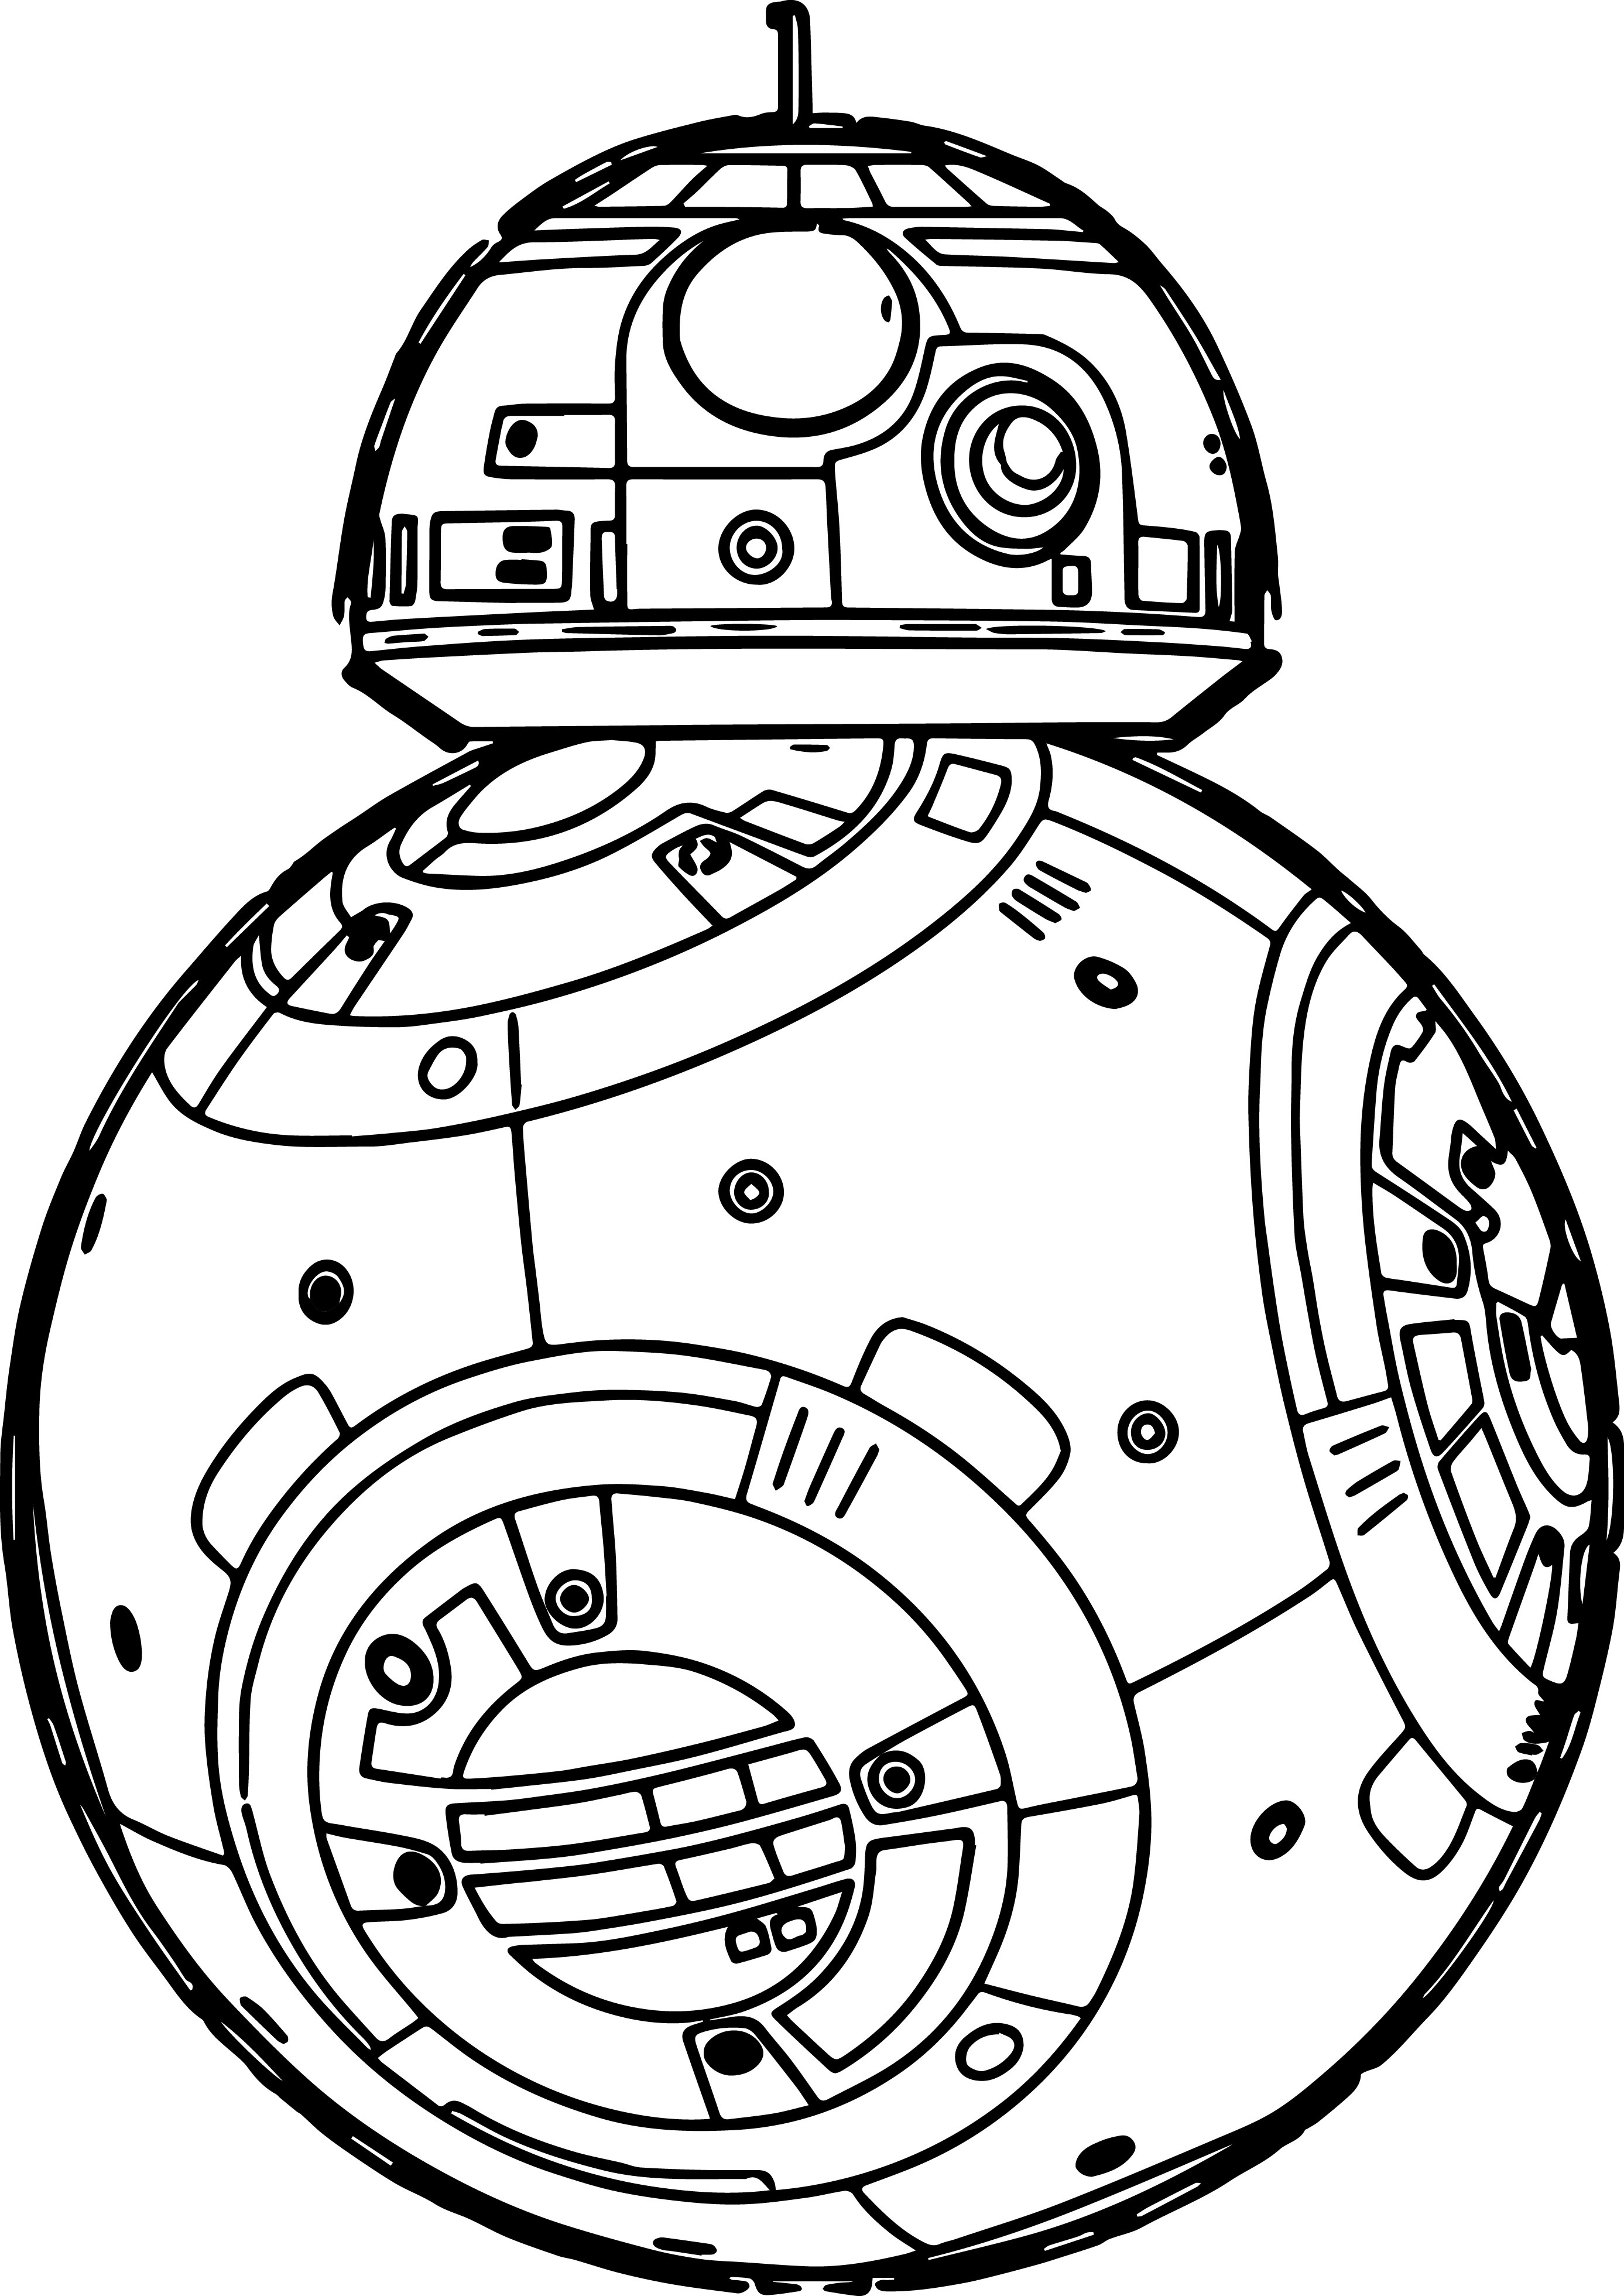 printable yoda coloring pages star wars free printable coloring pages for adults kids yoda printable coloring pages